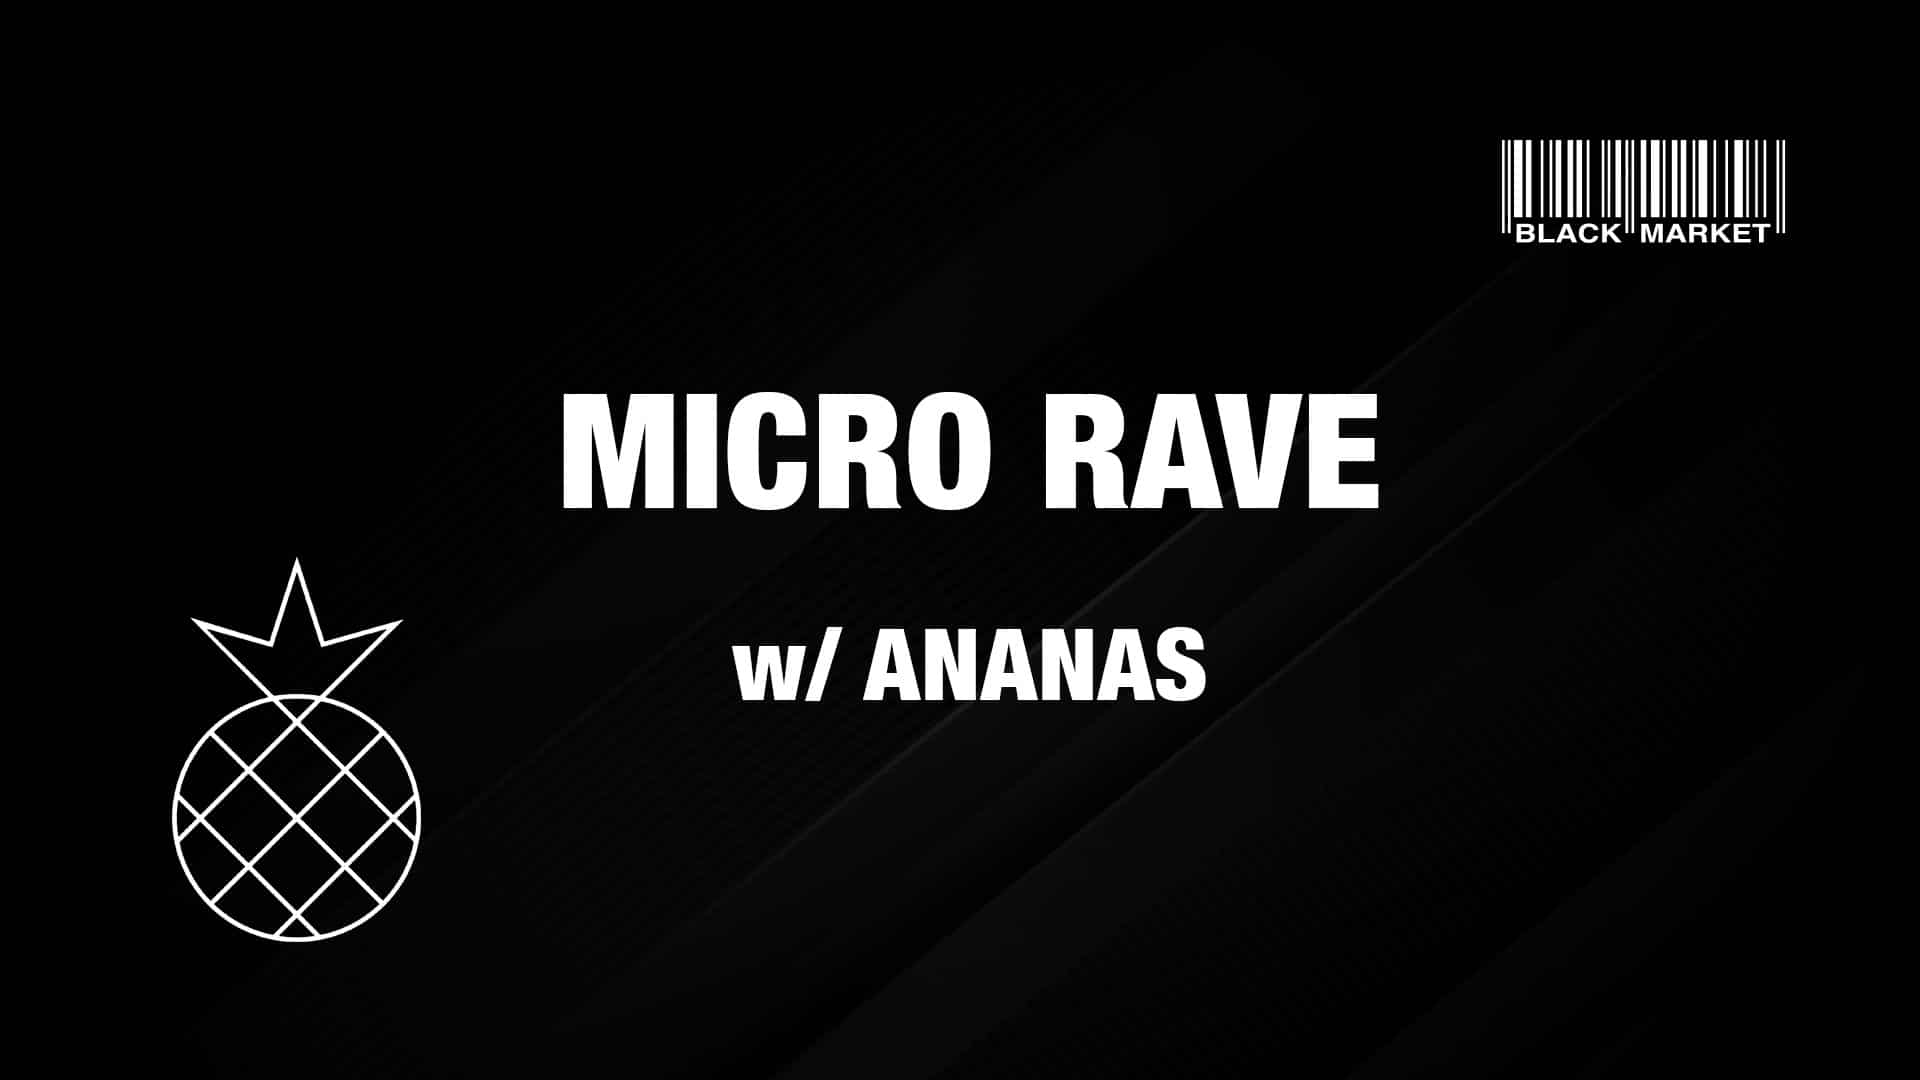 Events Wien: MICRO RAVE #9 w/ ANANAS